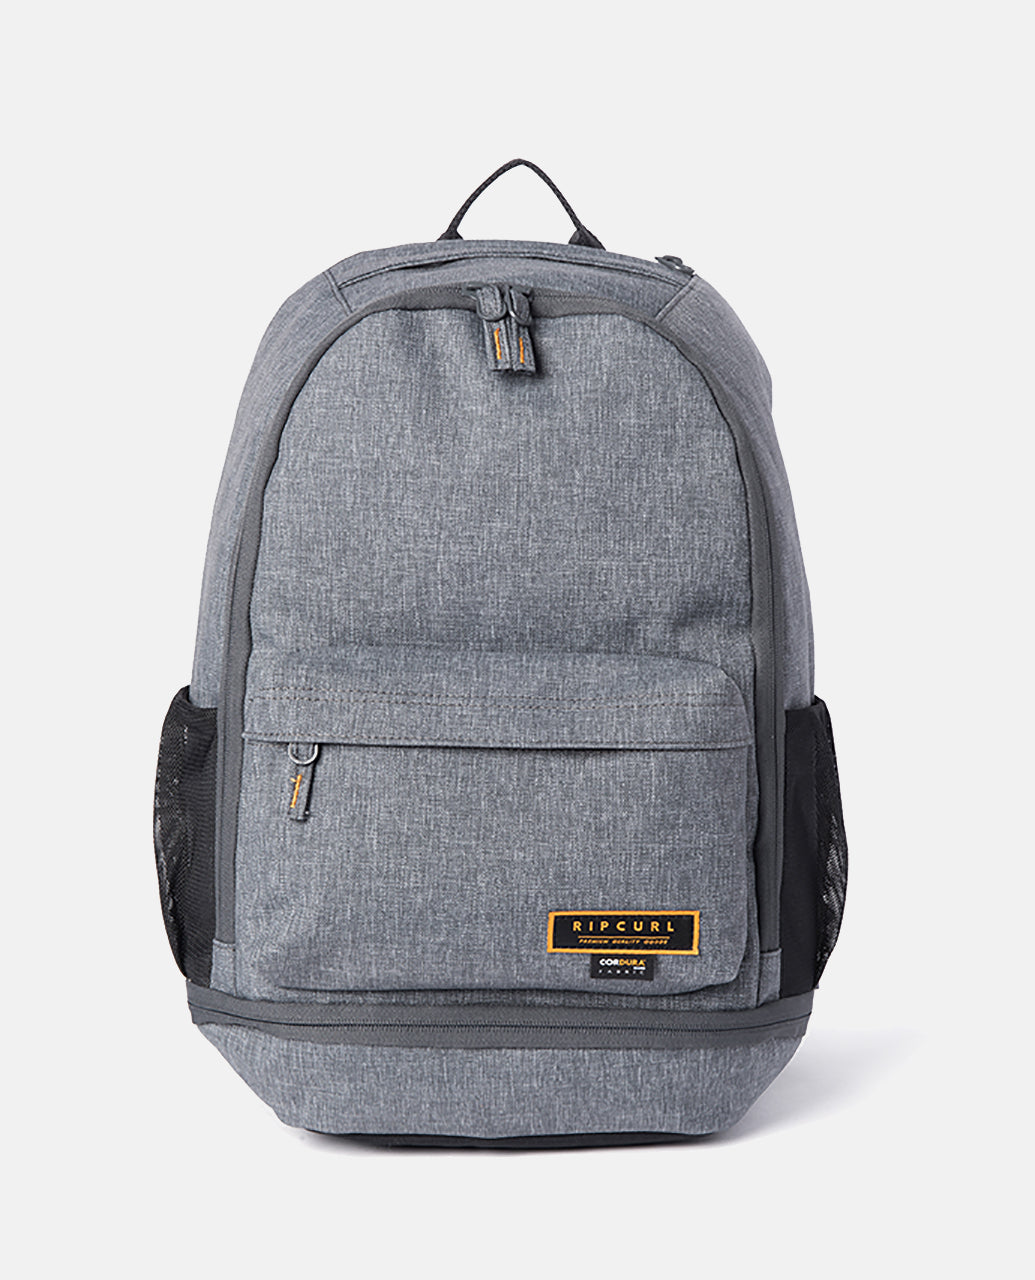 Ripcurl Vantage Cordura Backpack - grey